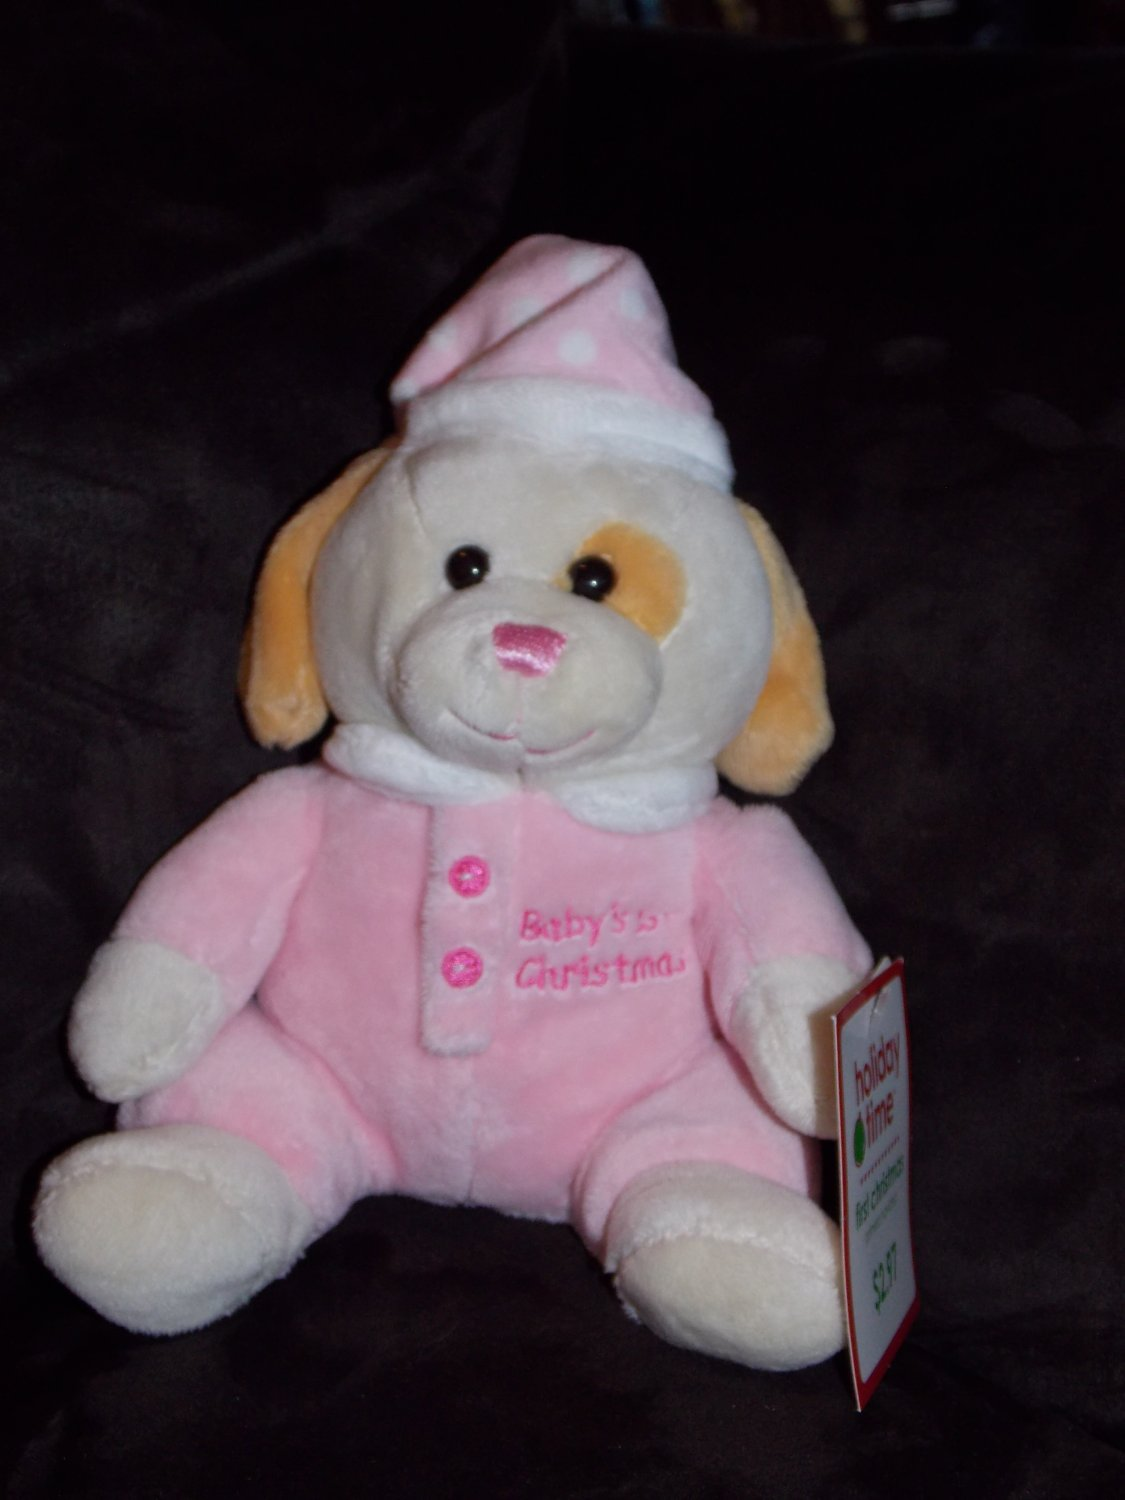 Walmart Pink Baby's 1st Christmas Sitting Puppy Dog Pink Hat Buttons